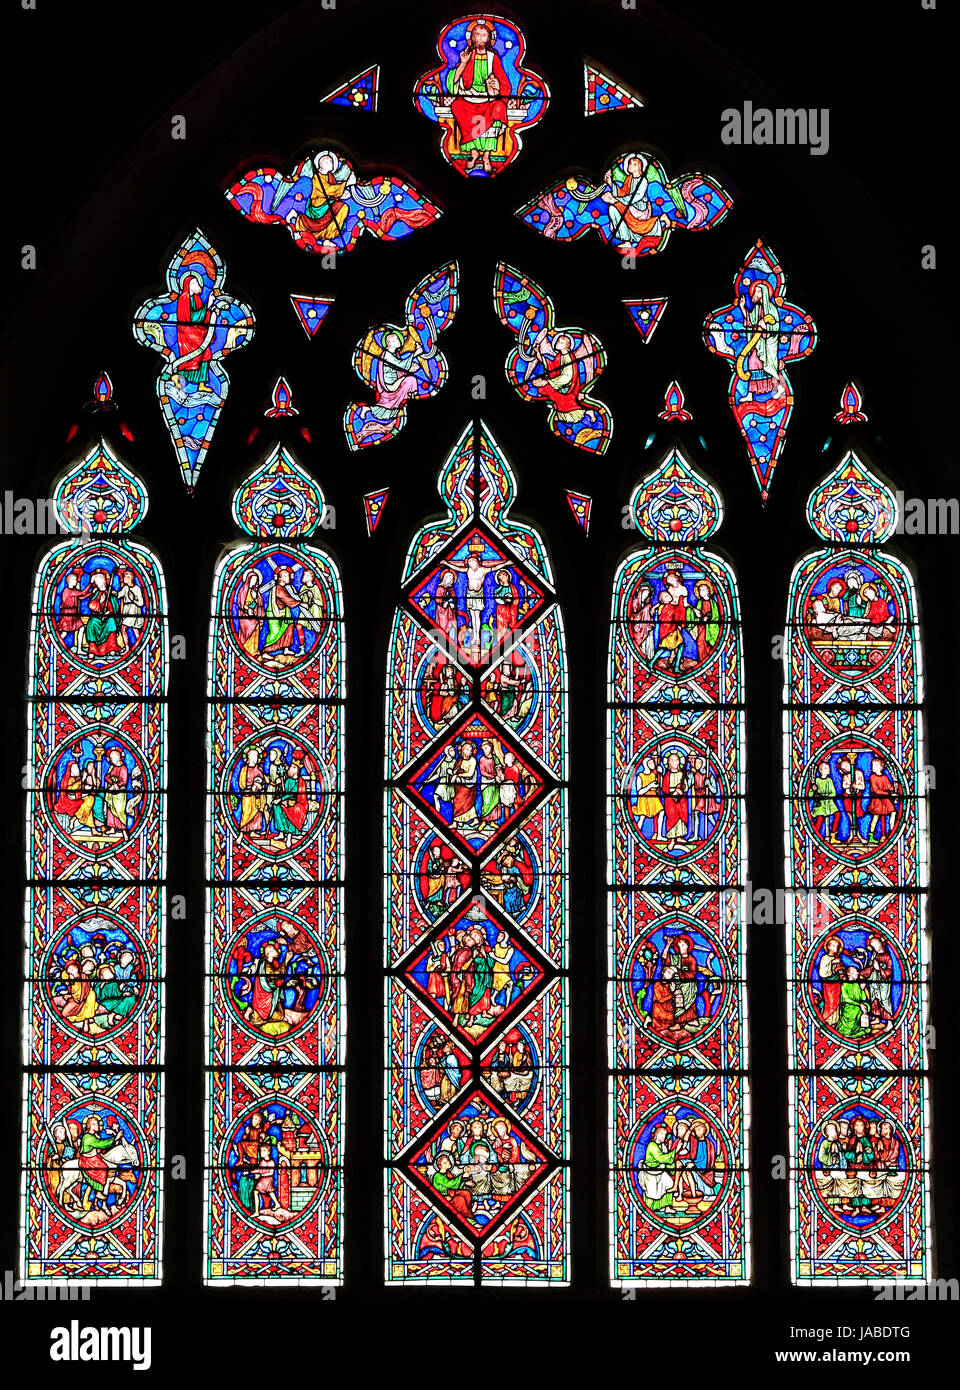 The Passion Window, passion scenes, stained glass window, by Adolph Didron of Paris, 1860, Feltwell Church, Norfolk, - Stock Image